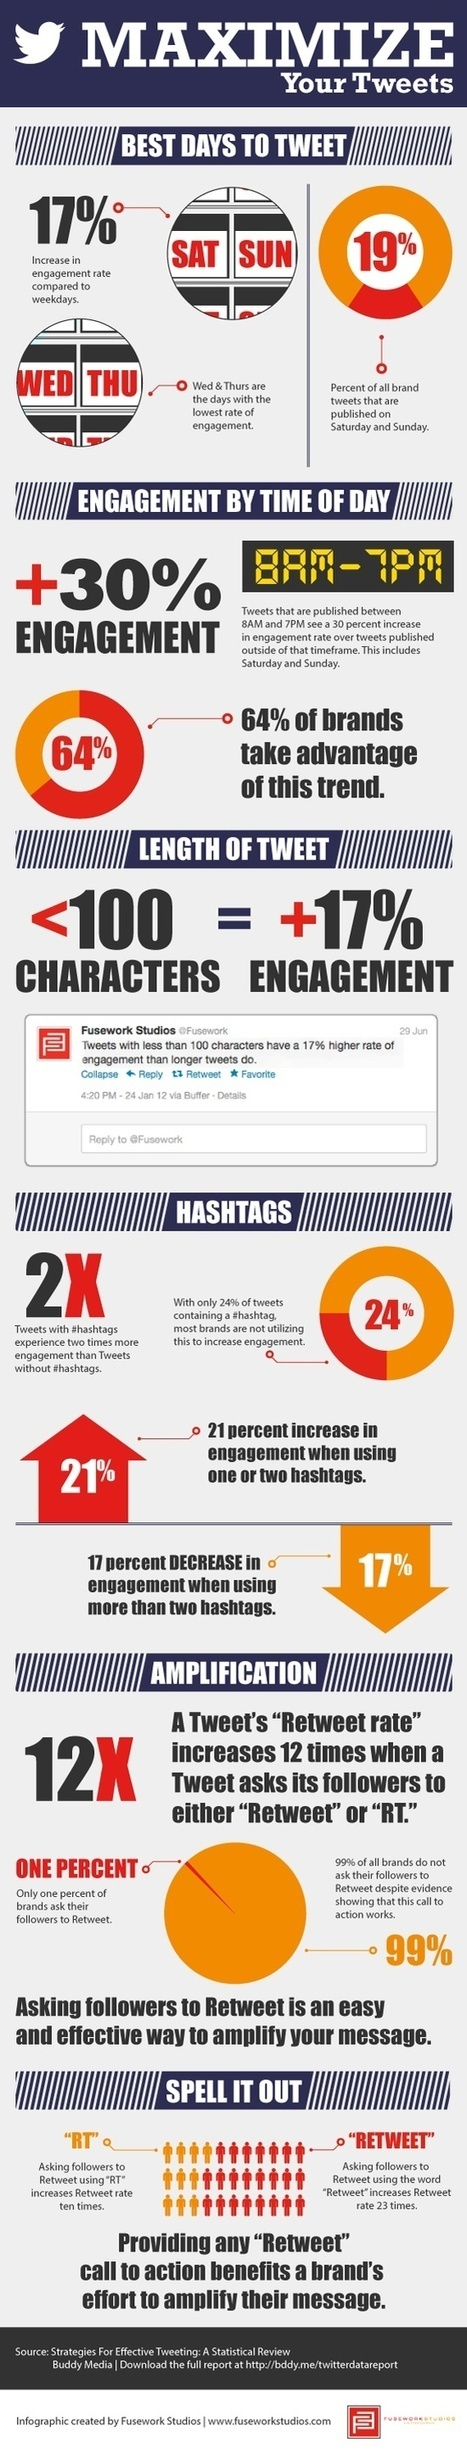 Tips To Maximize Your Tweets | Infographics | SOCIAL MEDIA MARKETING TIPS | Scoop.it